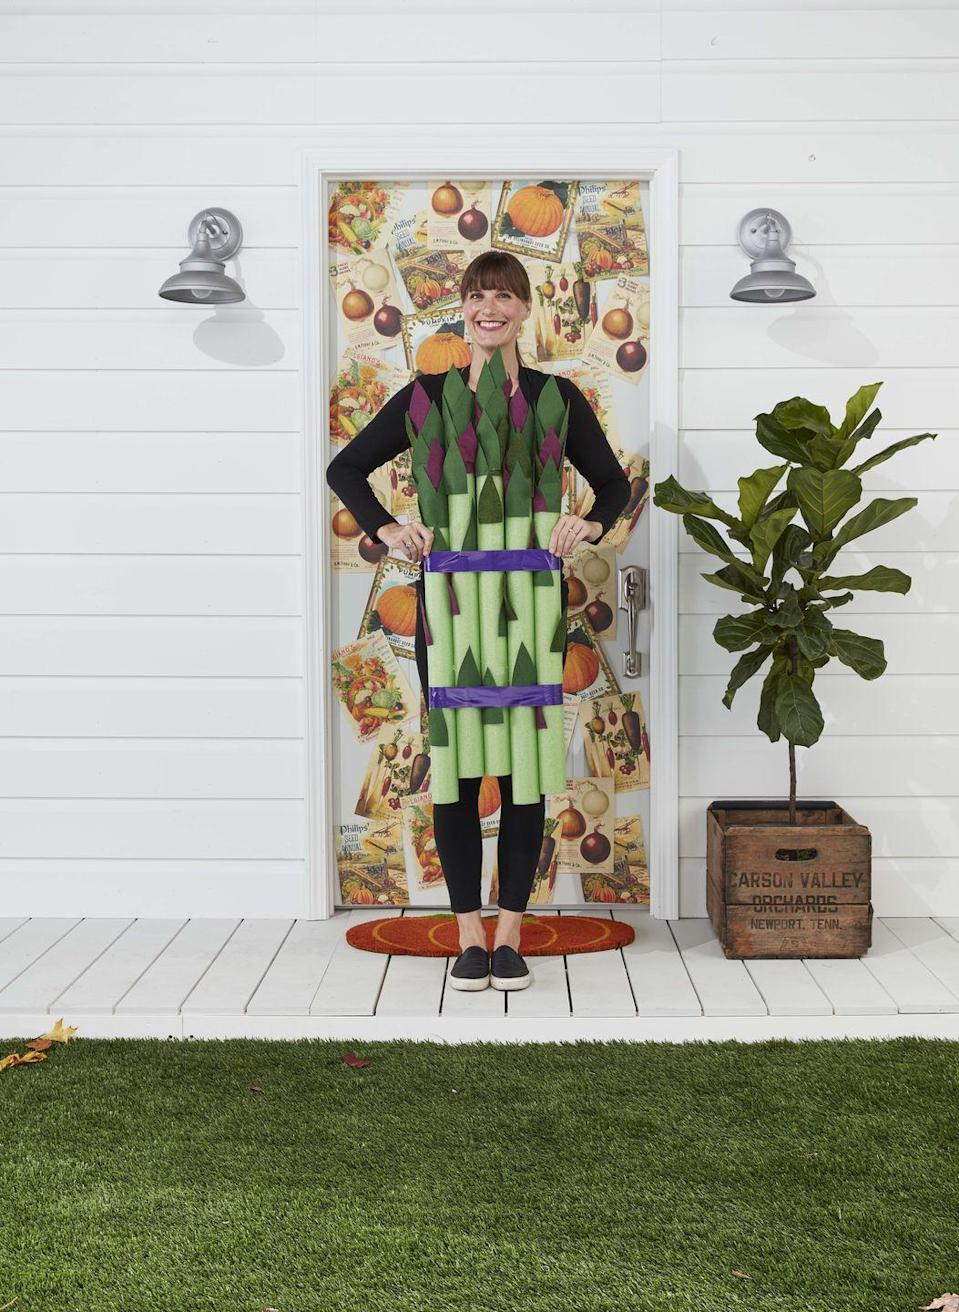 """<p>Serve up a little of your favorite vegetable in costume form! <strong><br></strong></p><p><strong>Make the Costume:</strong> Gather five lime green pool noodles. Cut leaves from purple and green felt (see template); you will need 10 to 12 for each stalk. Adhere to noodles, concentrating them at the top, with spray adhesive. Bundle pool noodles with purple duct tape. Tape a pair of suspenders to the back of the noodles and drape over shoulders.</p><p><a class=""""link rapid-noclick-resp"""" href=""""https://www.amazon.com/Oodles-Noodles-Deluxe-Foam-Pool/dp/B0787CFRDM/ref=sr_1_1_sspa?tag=syn-yahoo-20&ascsubtag=%5Bartid%7C10050.g.23785711%5Bsrc%7Cyahoo-us"""" rel=""""nofollow noopener"""" target=""""_blank"""" data-ylk=""""slk:SHOP POOL NOODLES"""">SHOP POOL NOODLES</a></p>"""